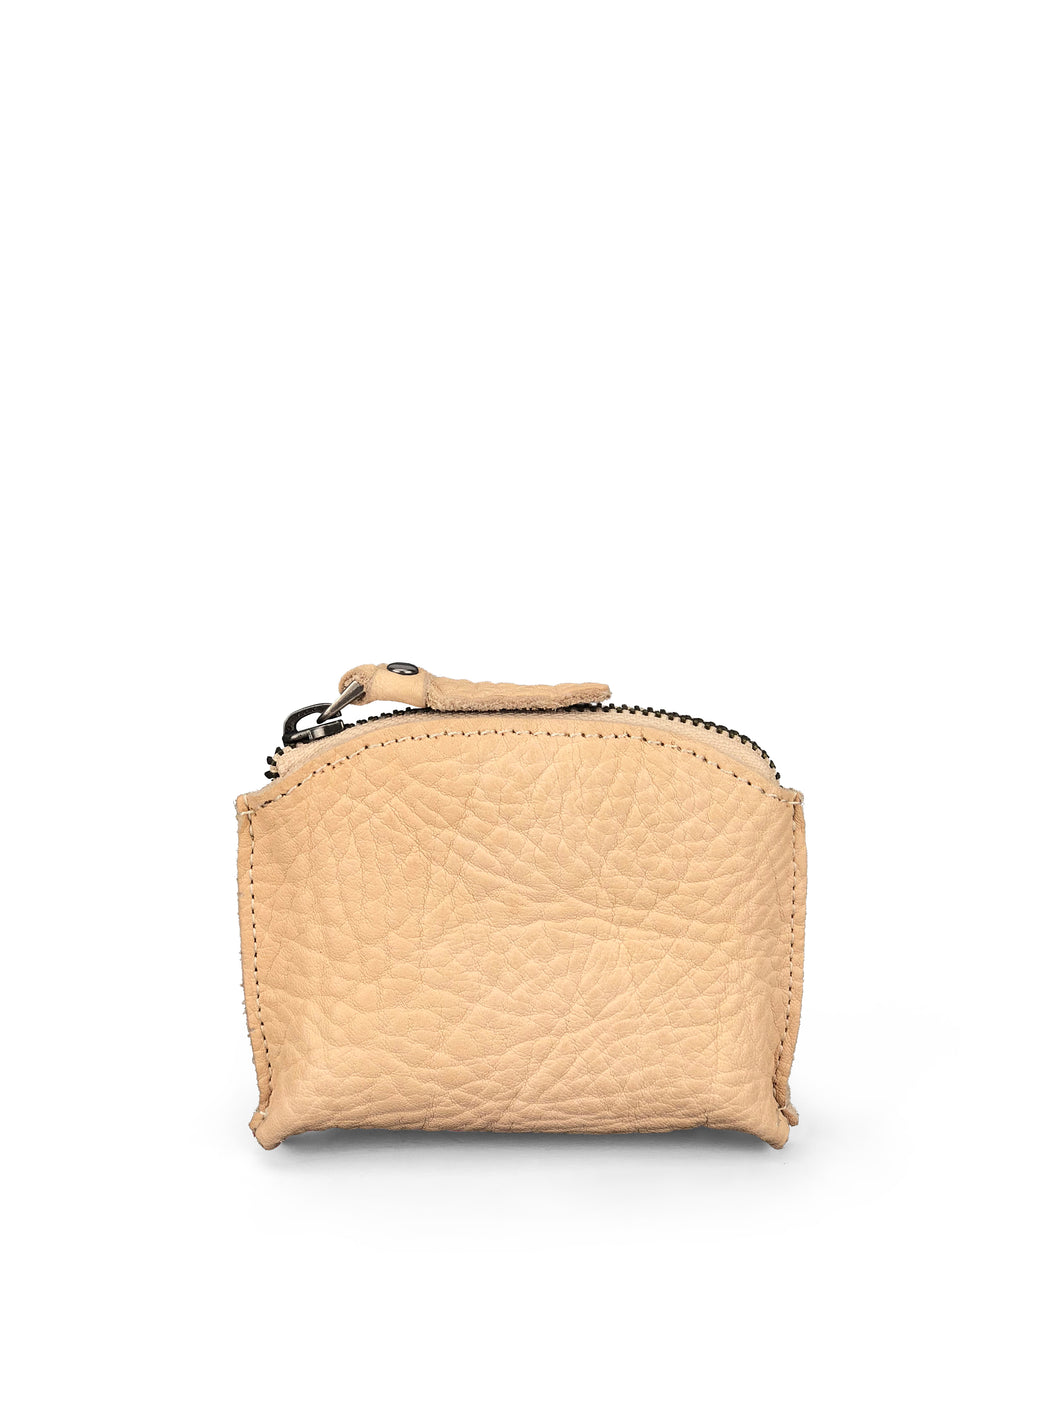 Pebbled Leather Purse - Beige